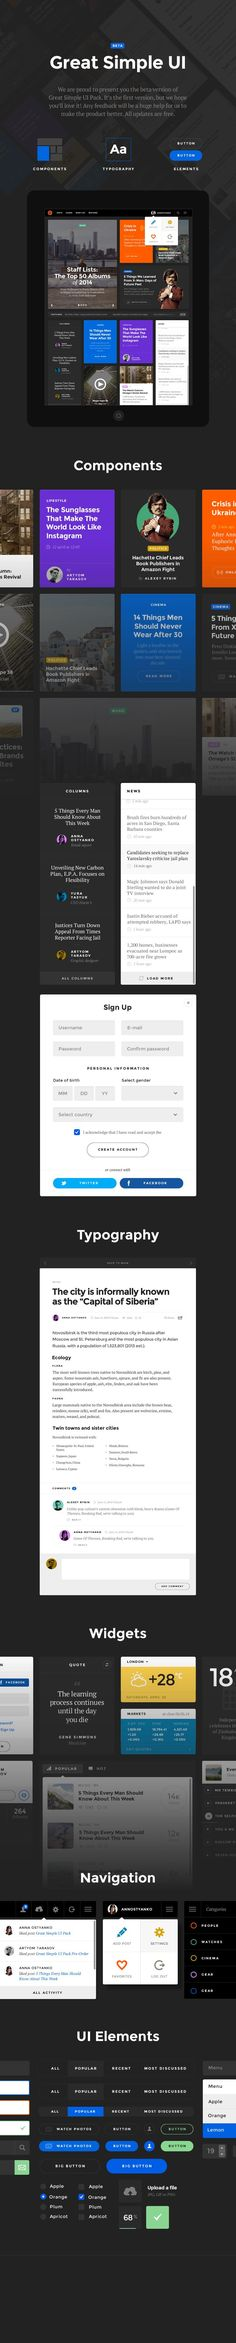 Greatsimple magazine ui | Infographics!!! | Pinterest